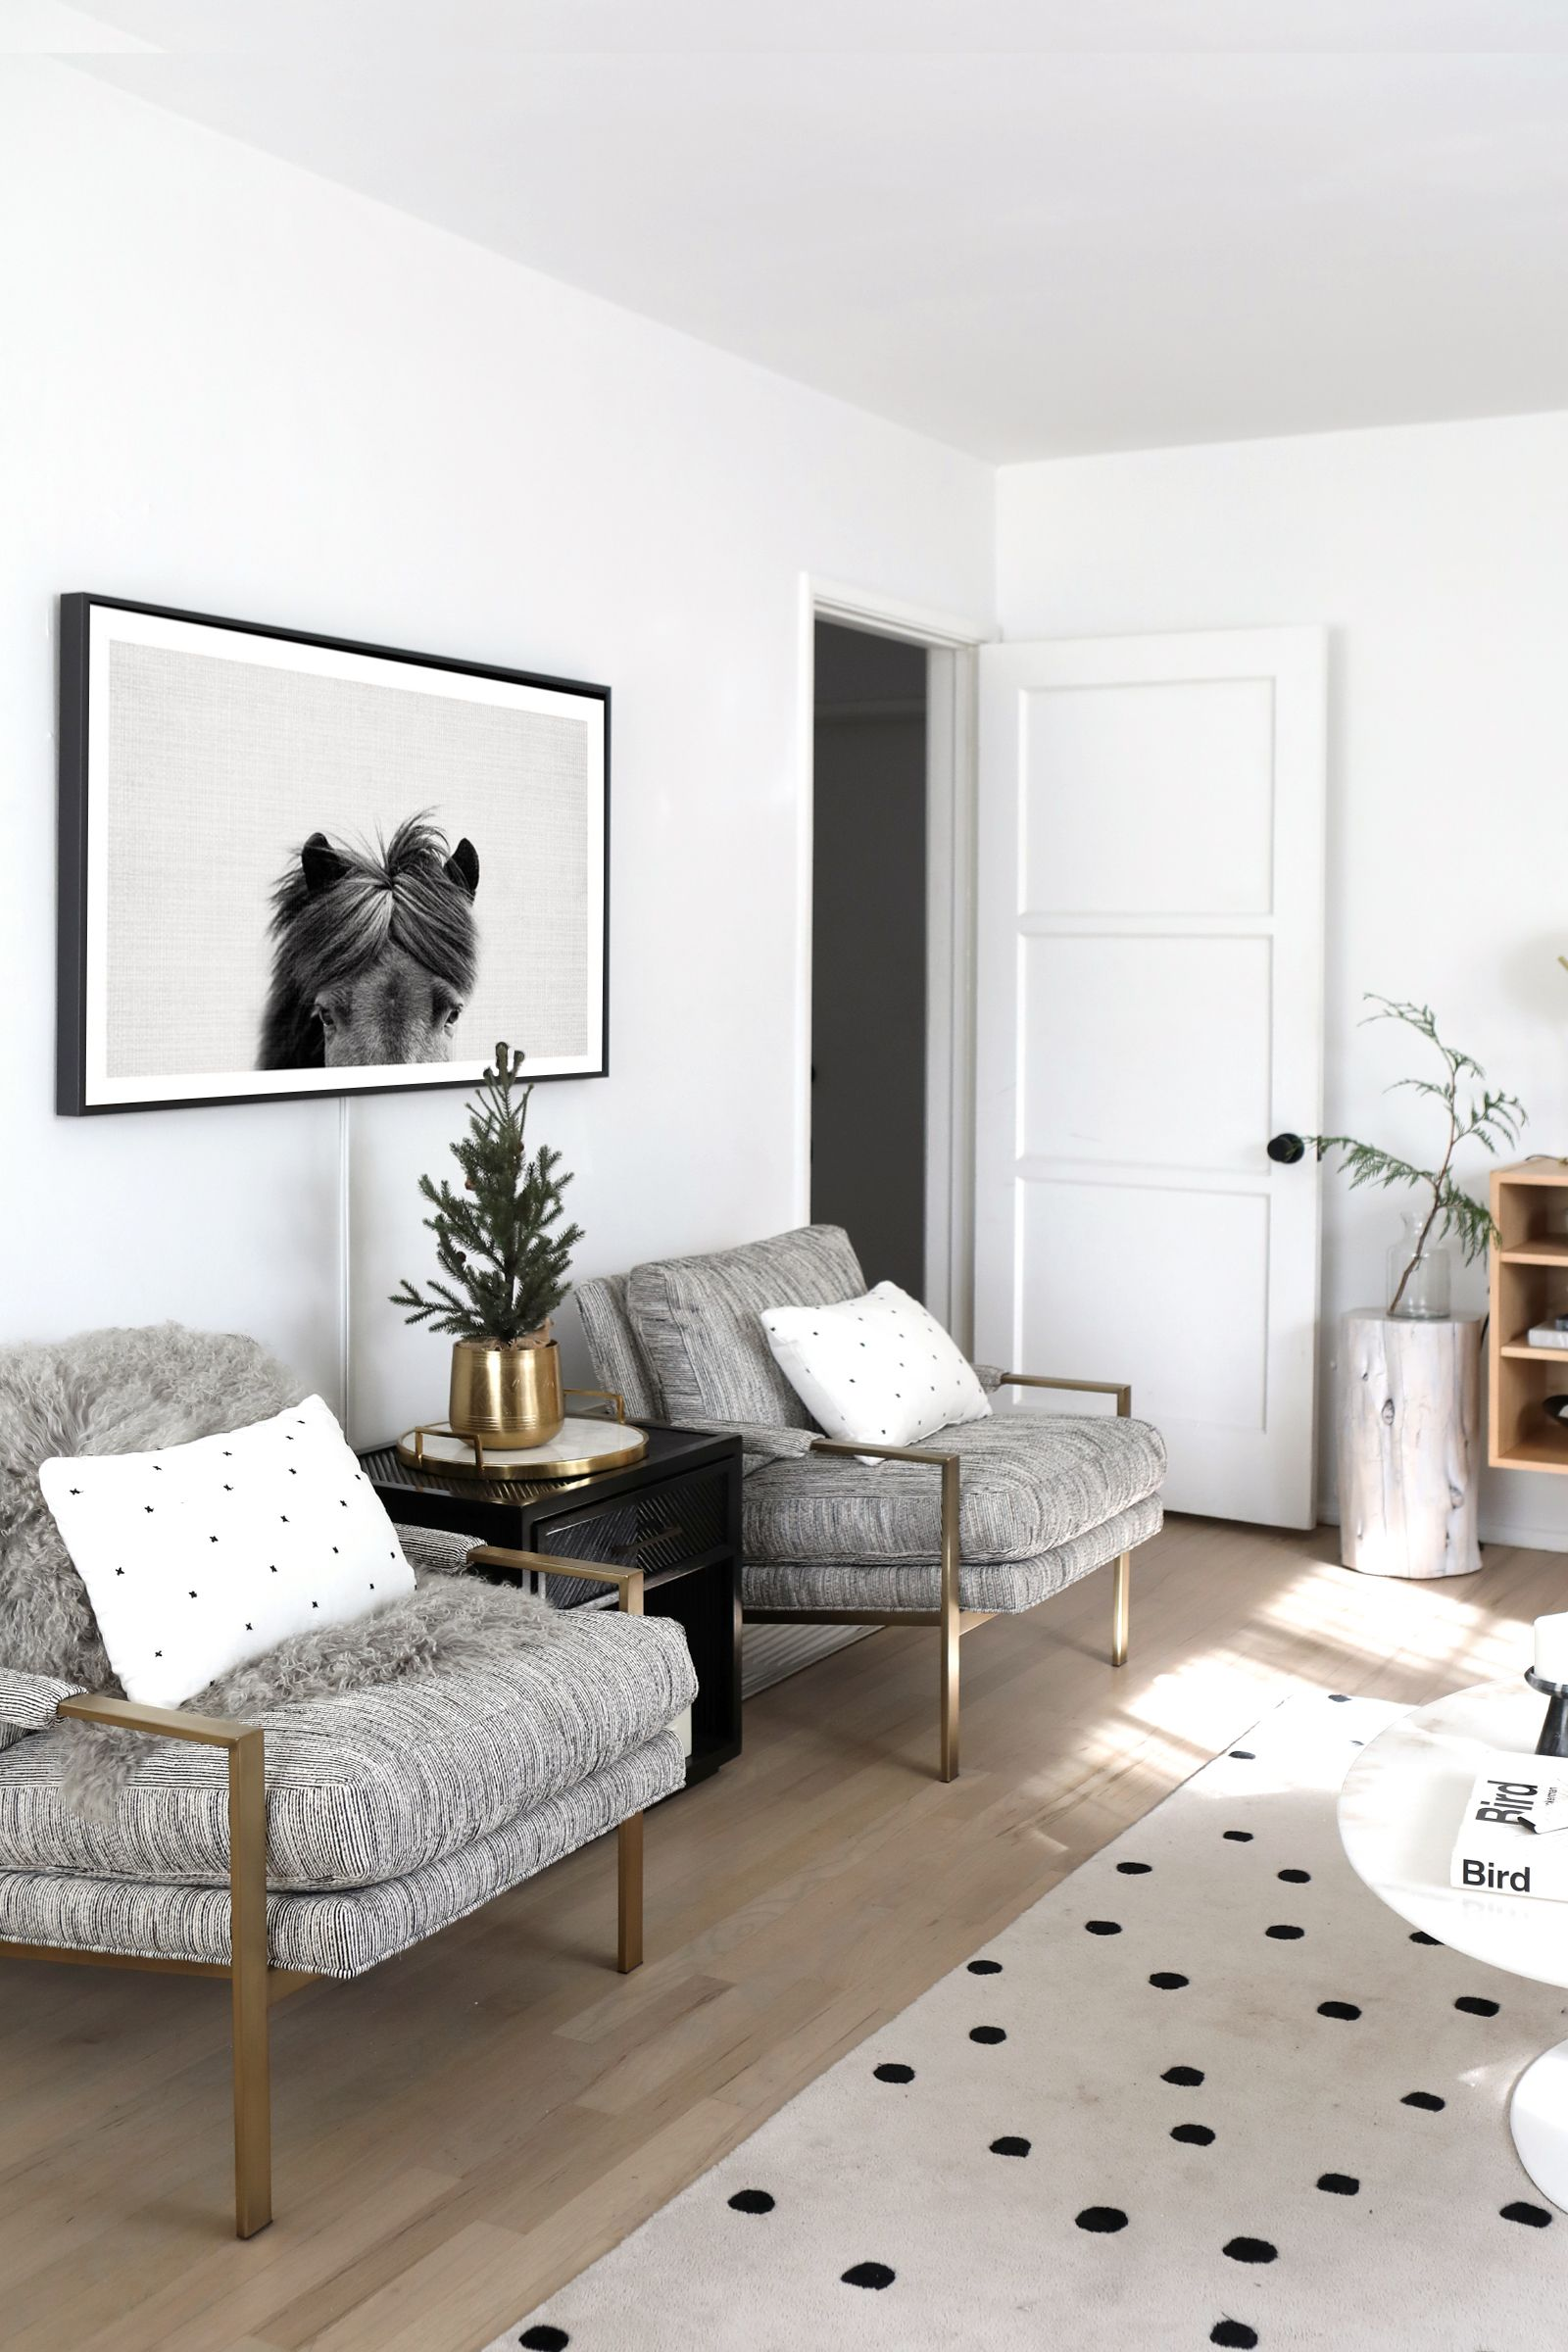 Creating Sanctuary at Home During the Holidays | Wohnzimmer ...